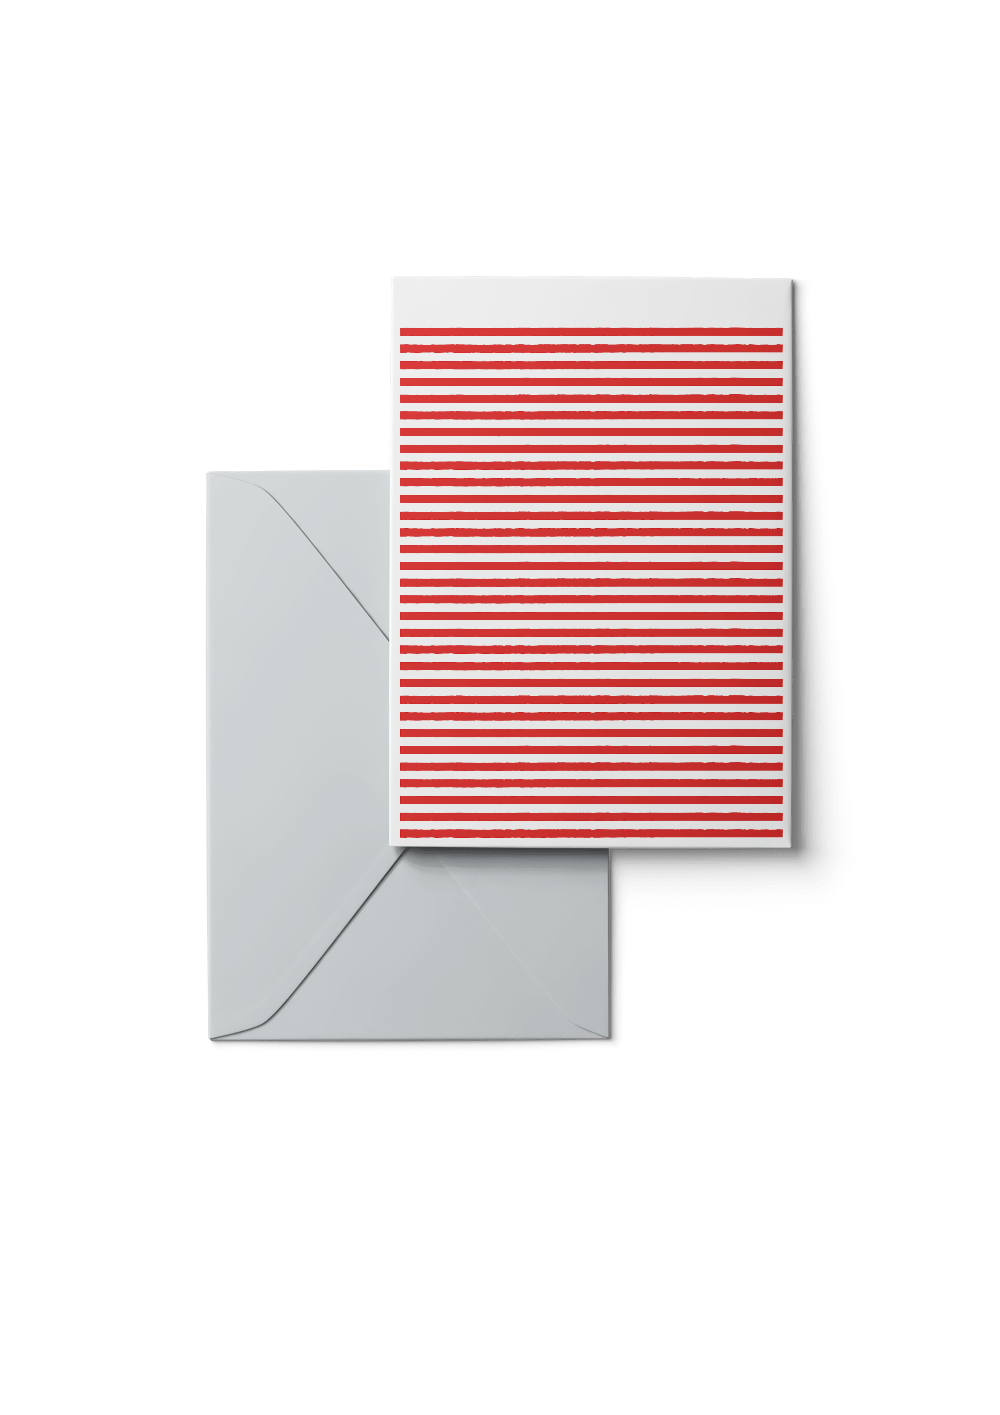 Stripetown, Fire Engine Red, 6 Karten Set by Karten Design Fabrik. Supplier of designer Greeting Cards, Gift Wrap, Christmas Cards & Invitations to leading design stores including Connox, Modulor, Magazin & Manufactum.